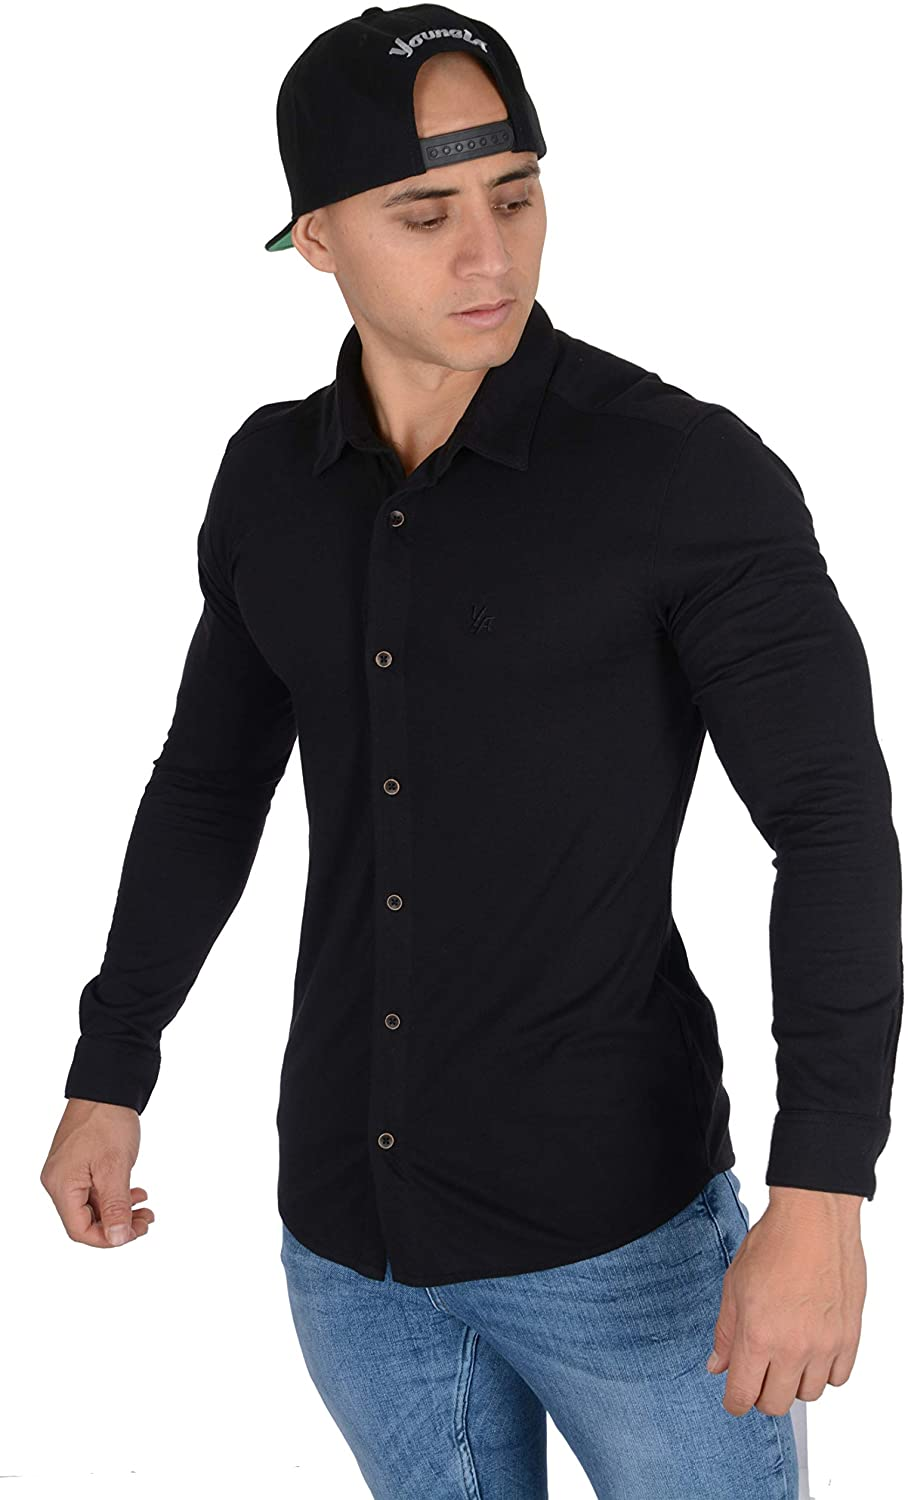 YoungLA Men's Slim FIt Dress Shirts | Button Up Long Sleeves | Athletic Fitted | Formal Long Sleeves for Work and Casual 415